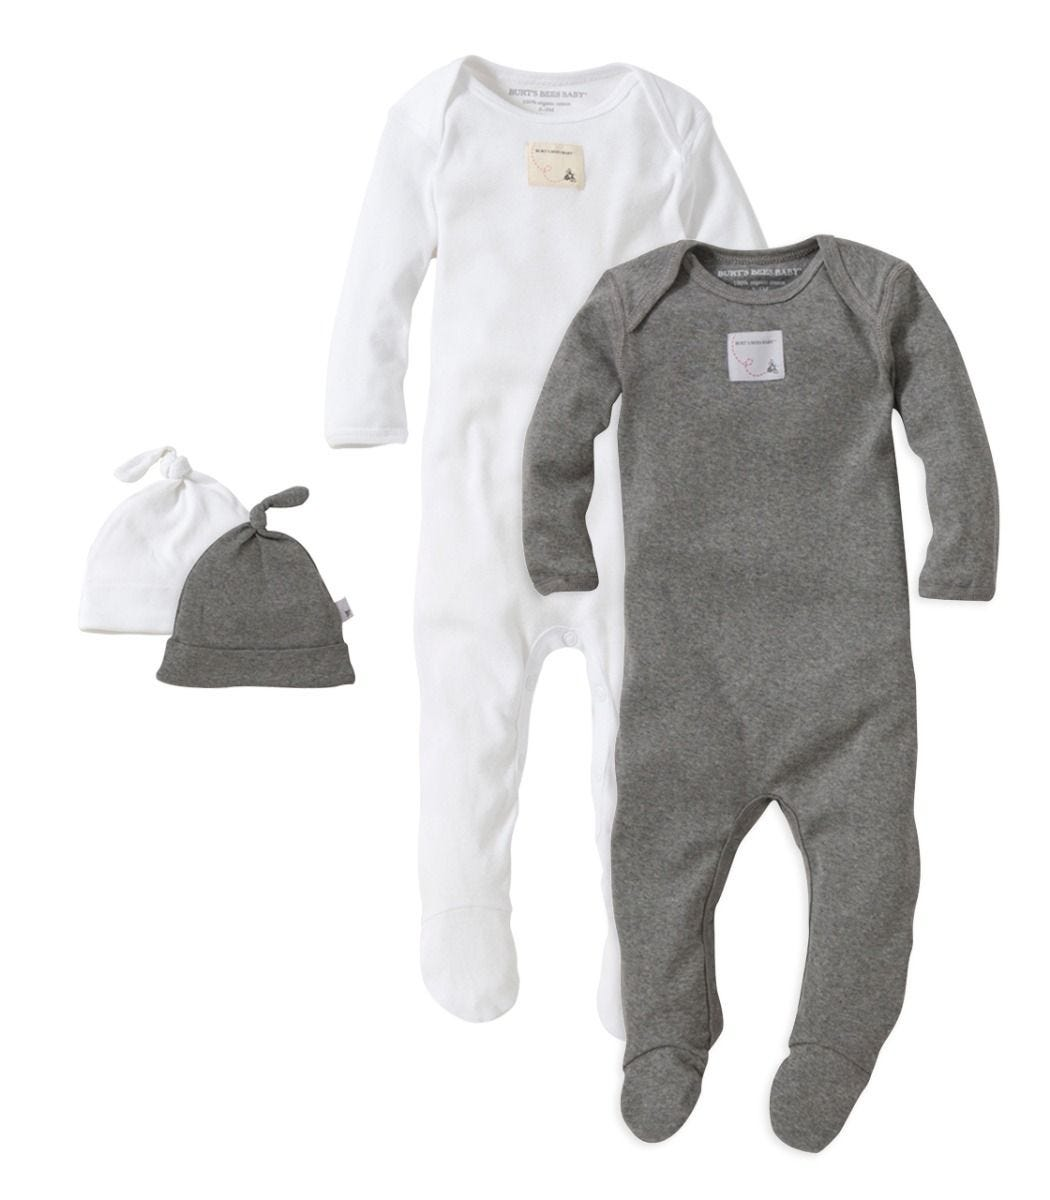 746eff6d1f6 Solid Whte   Grey Organic Baby Romper   Hat - Set of 2